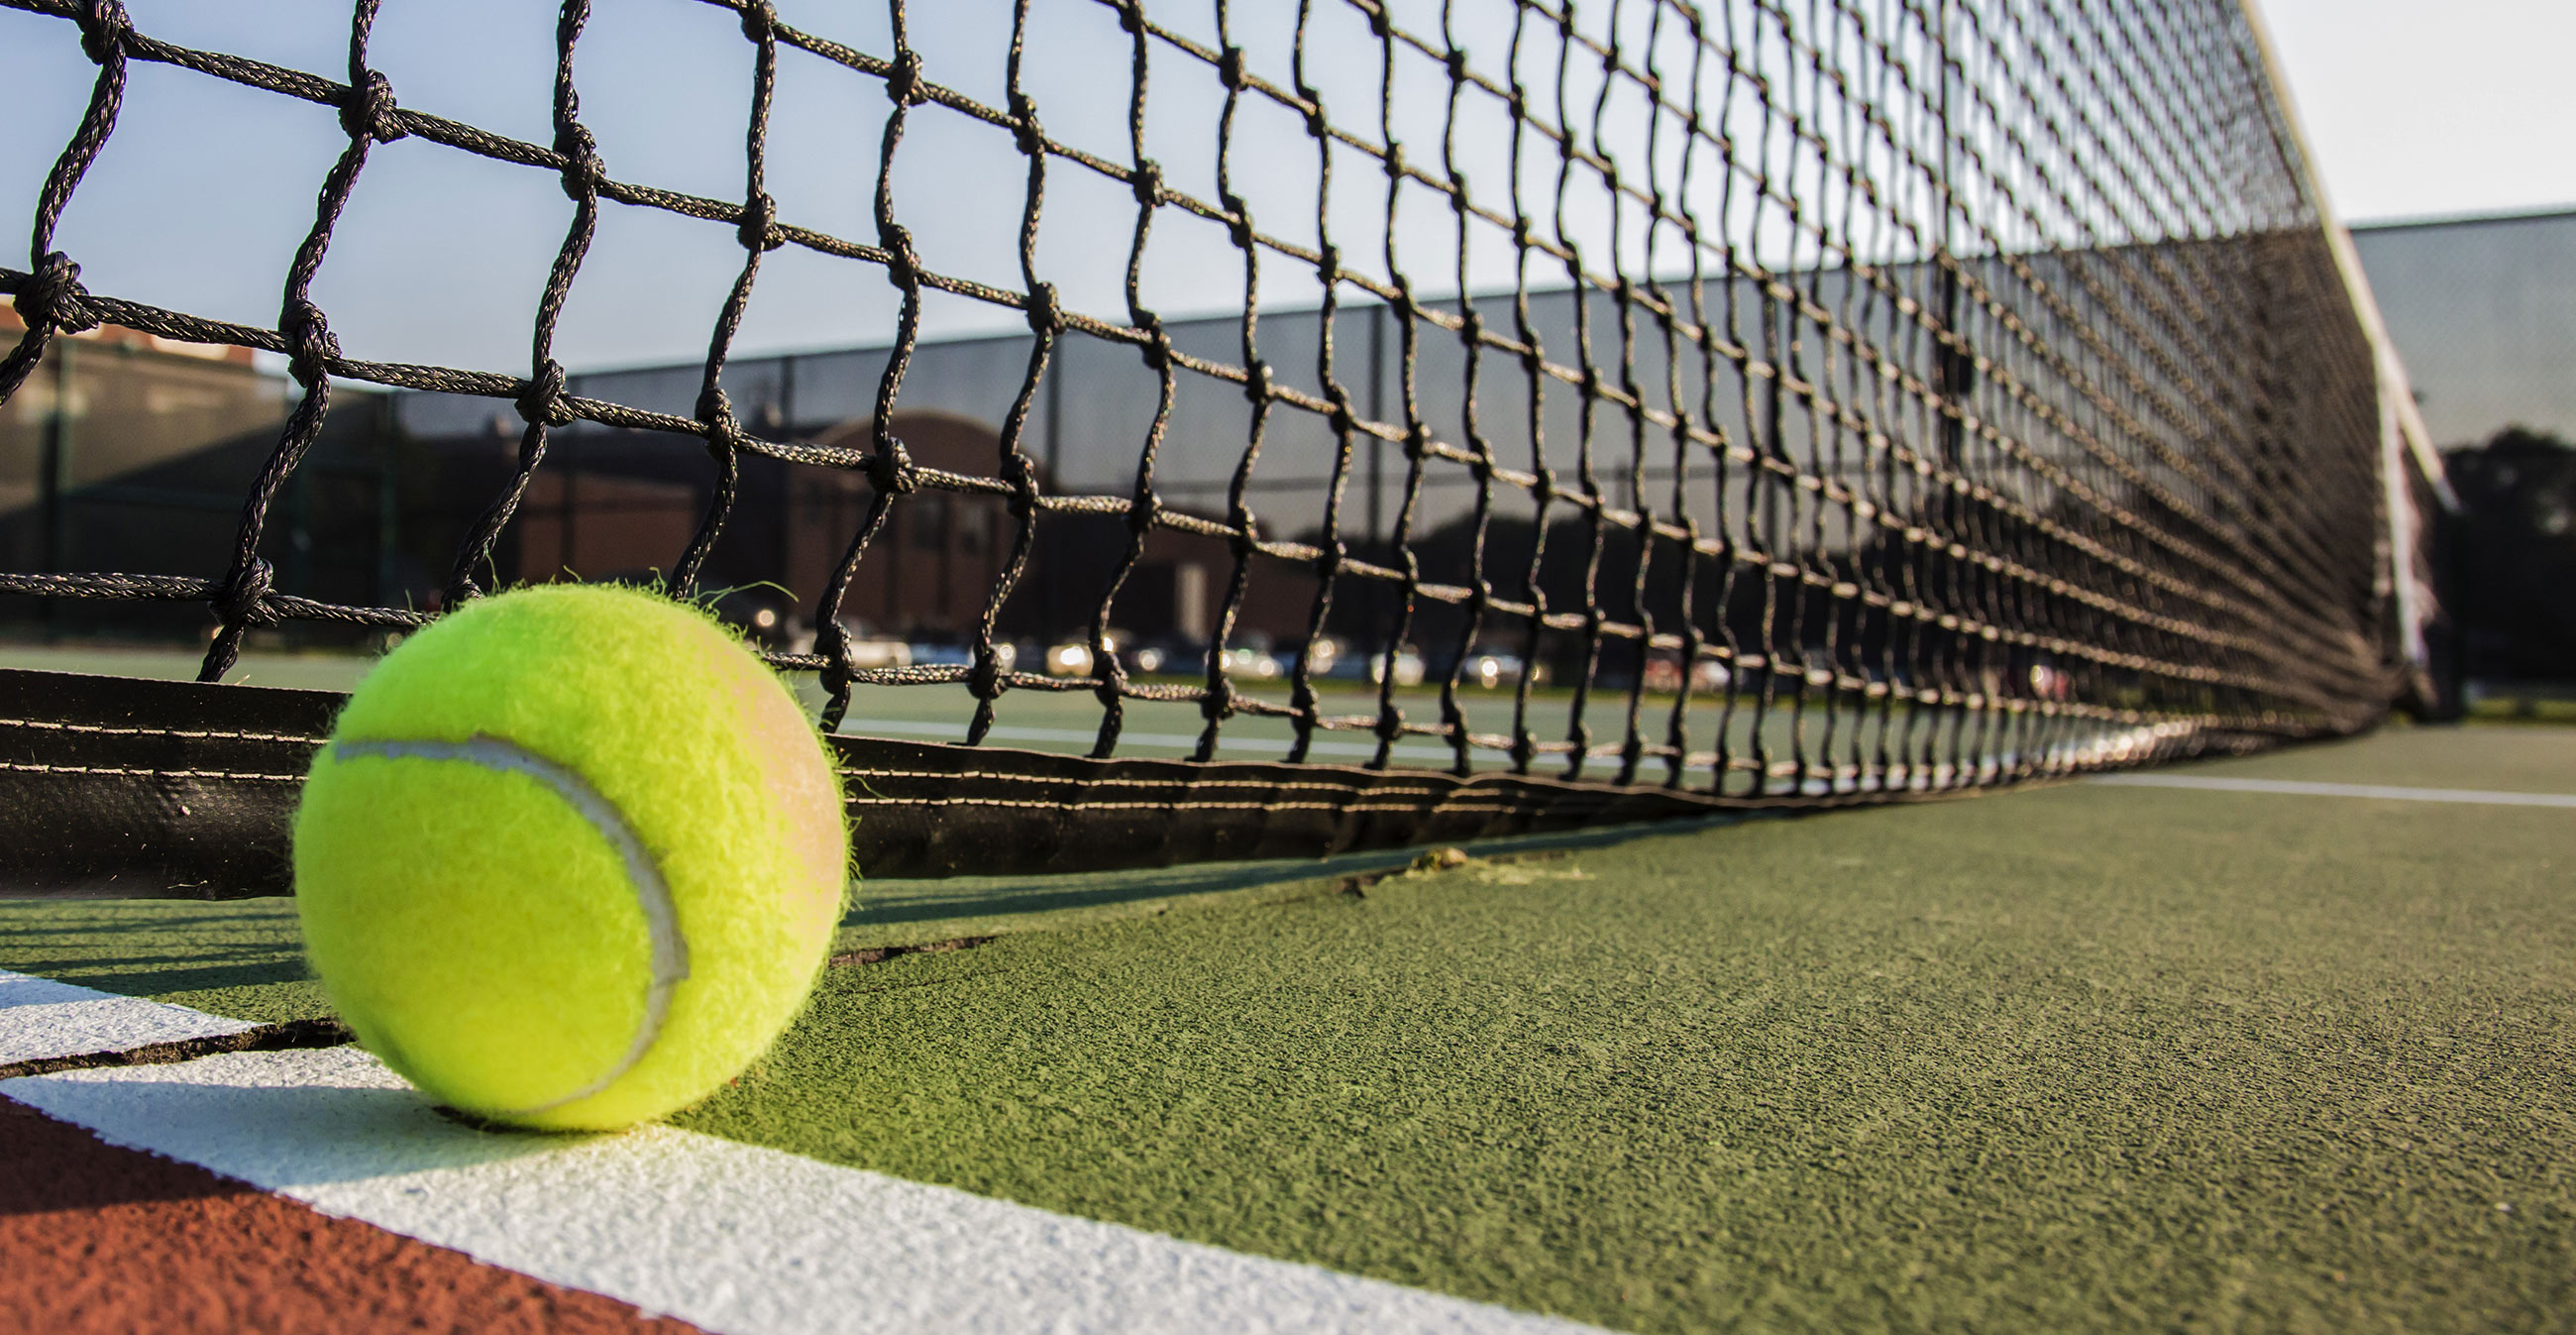 Tennis-background-latest-4.jpg